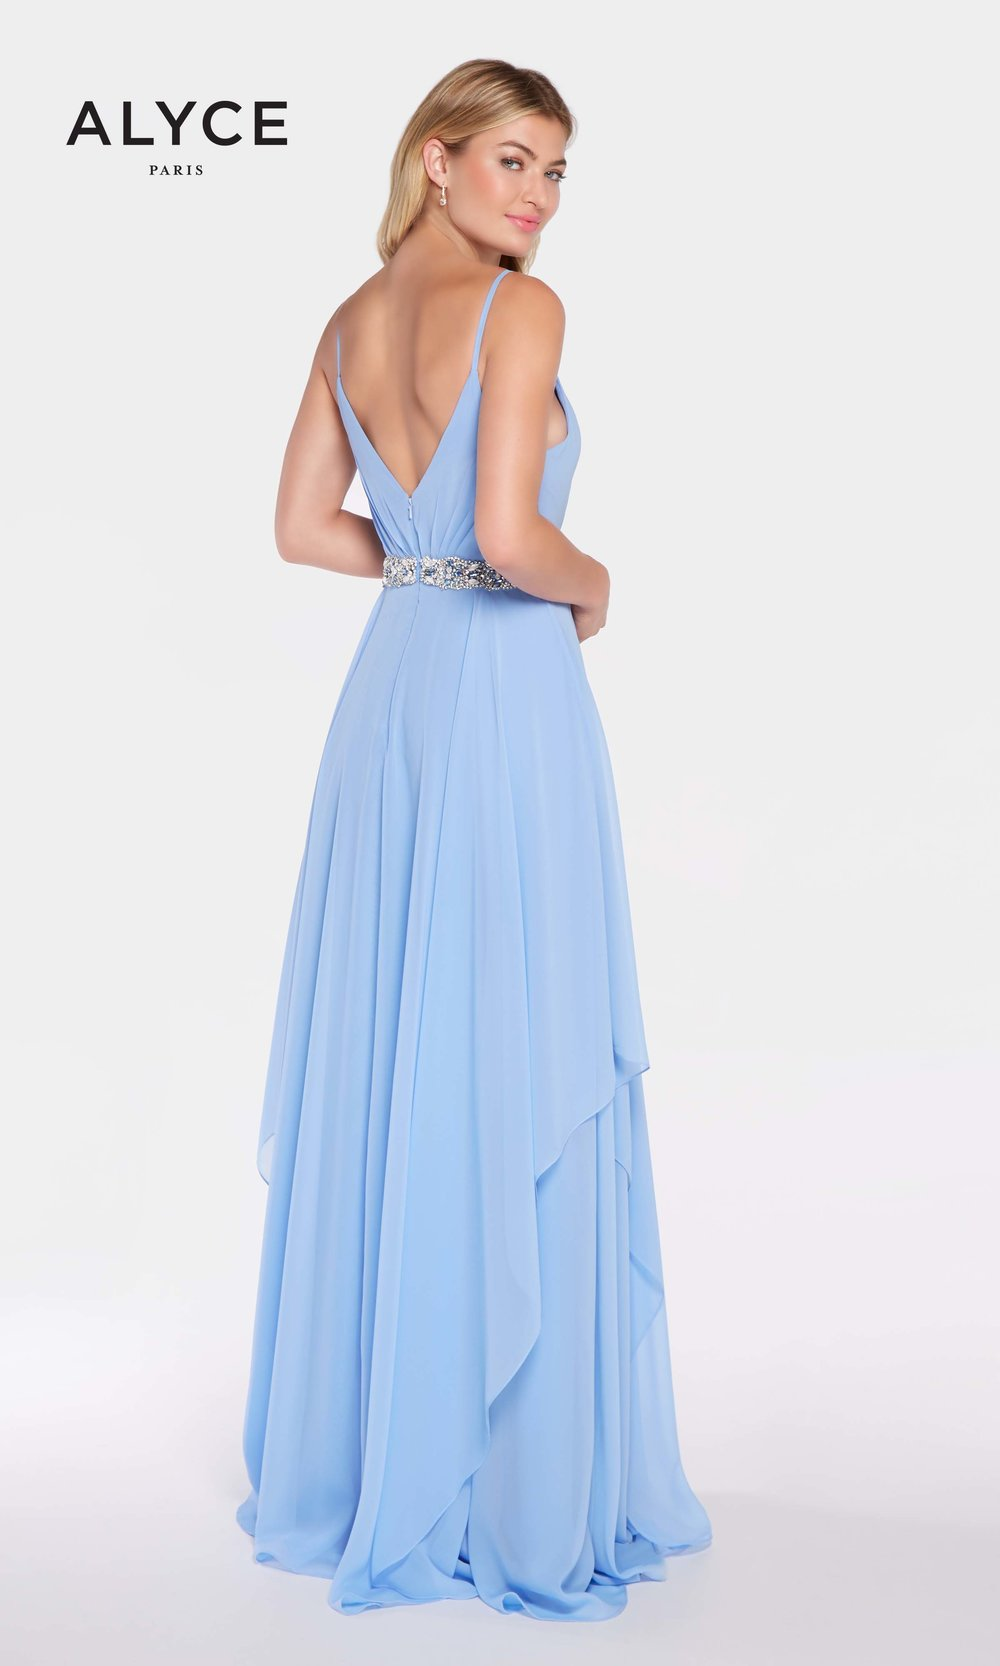 60092_Periwinkle Blue_back.jpg